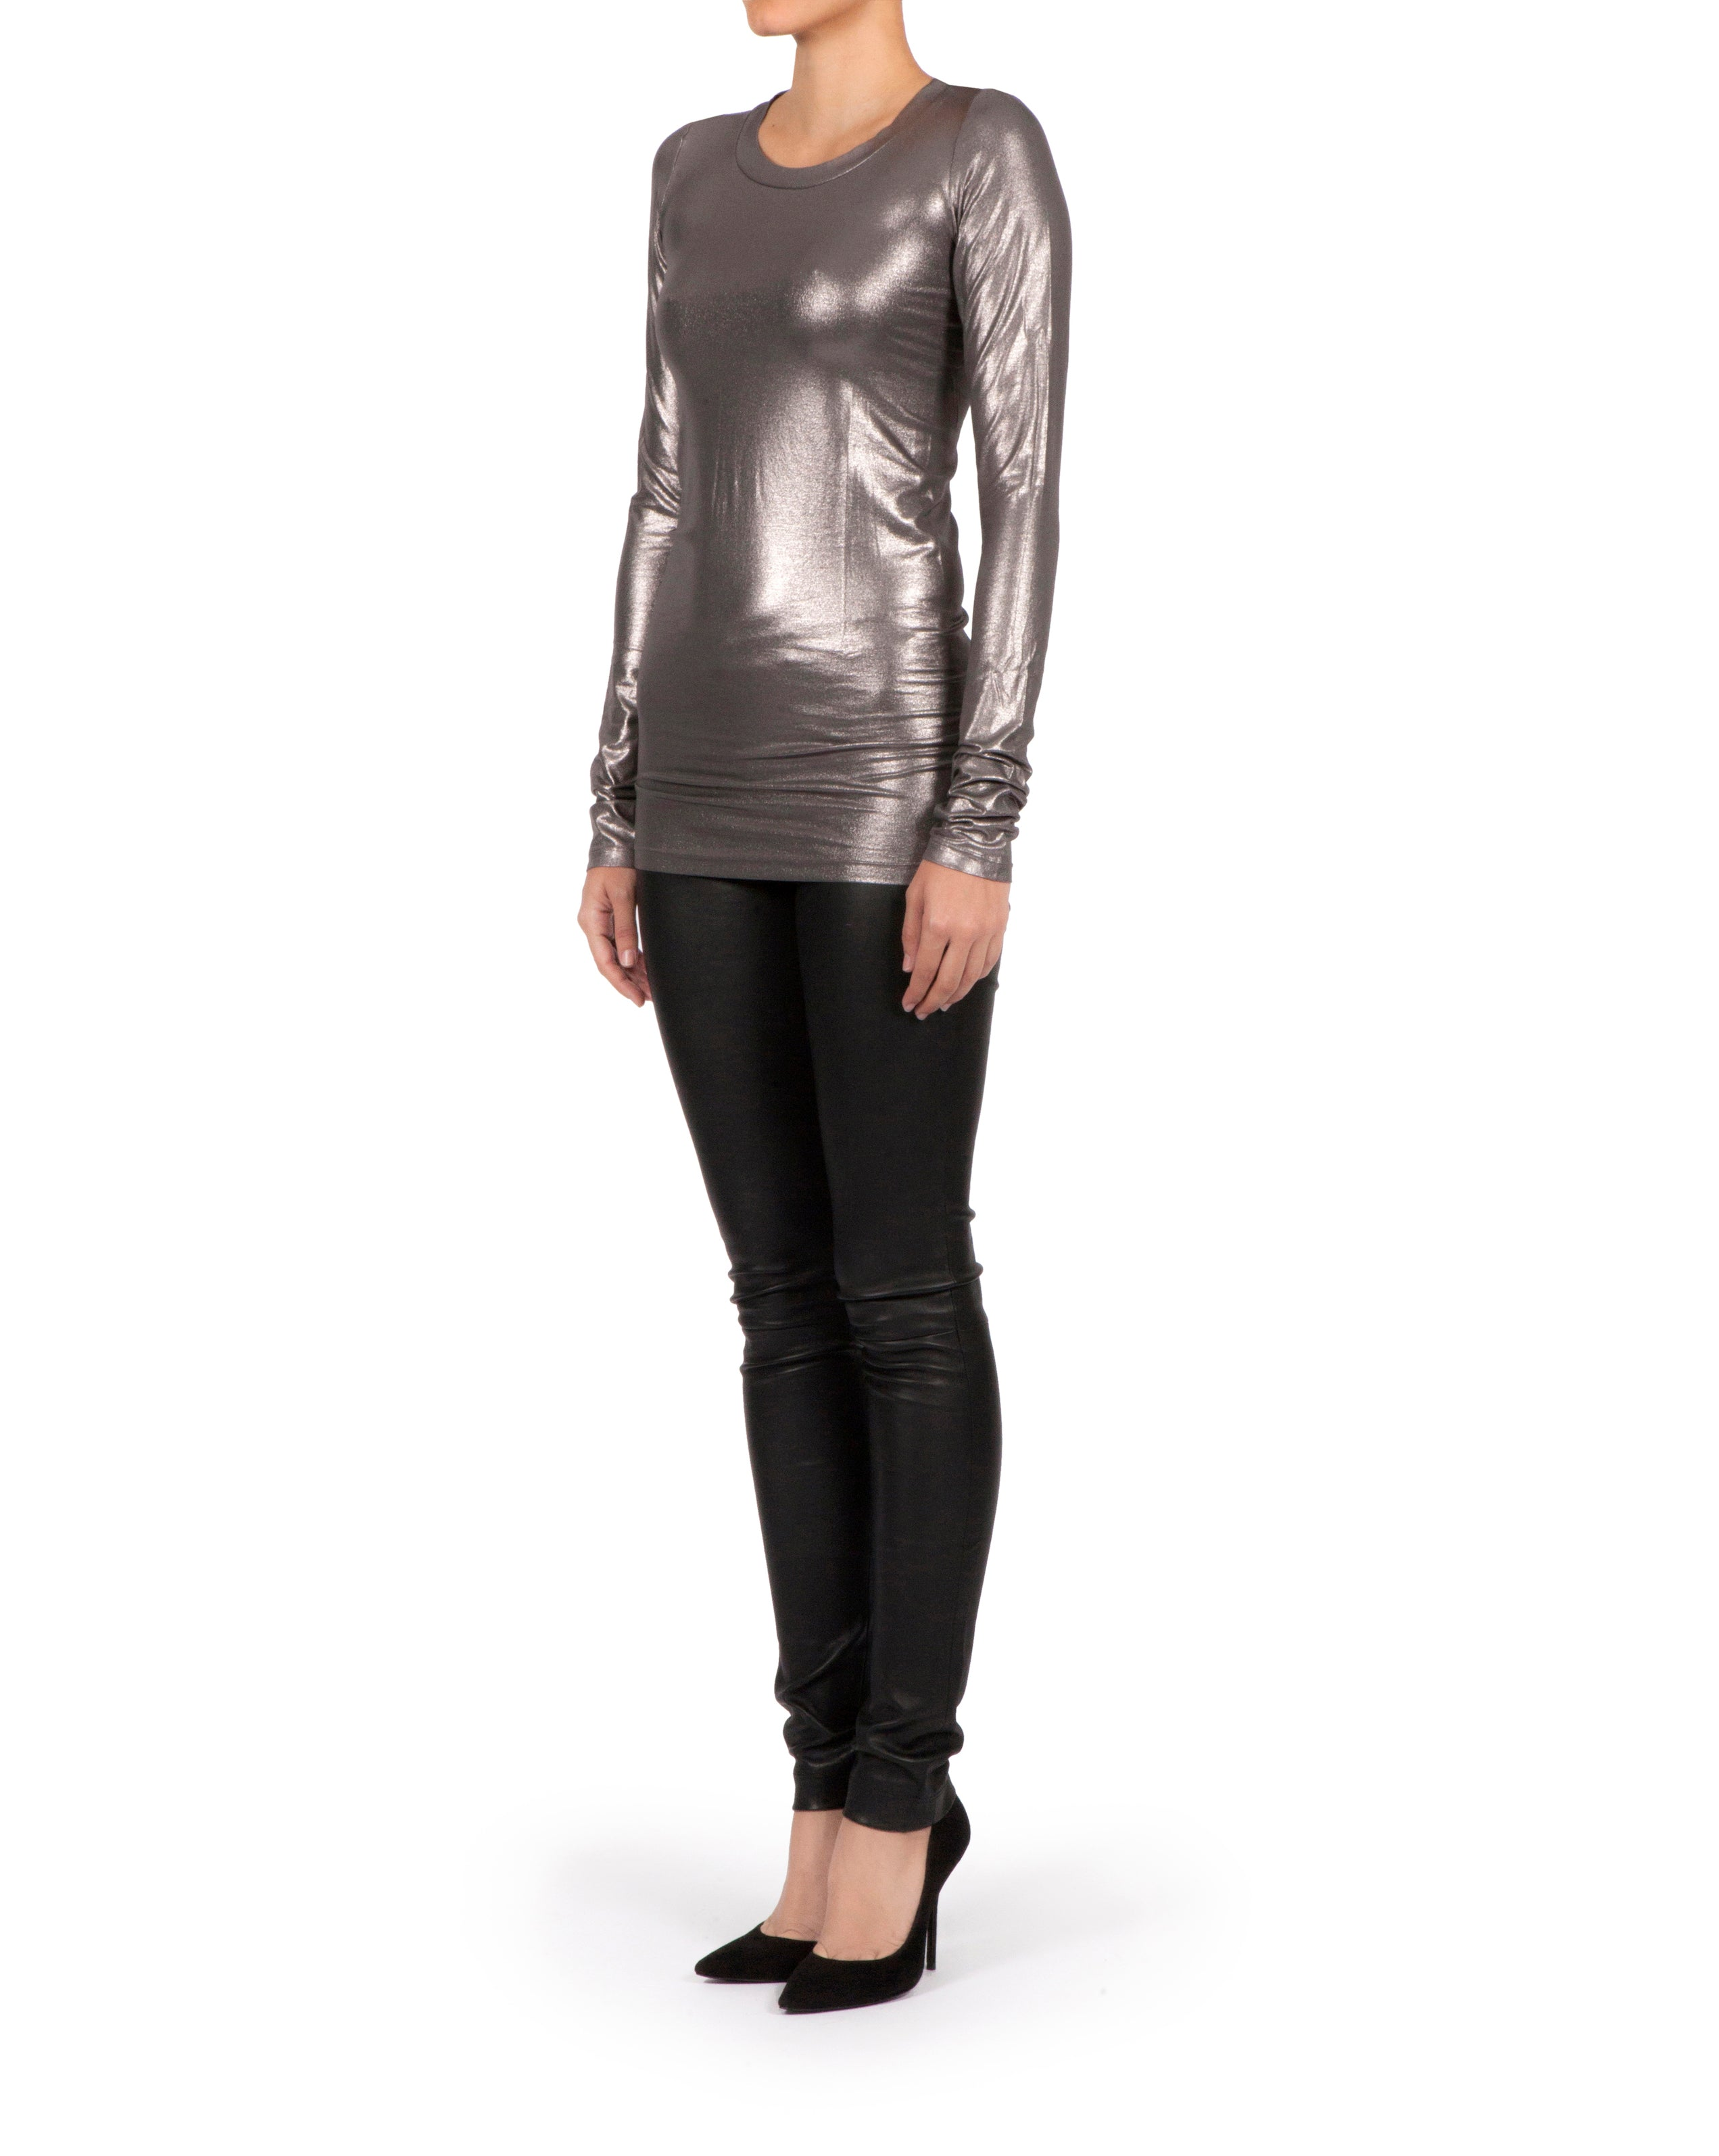 Amore T-shirt Long Sleeve - Metallic Silver